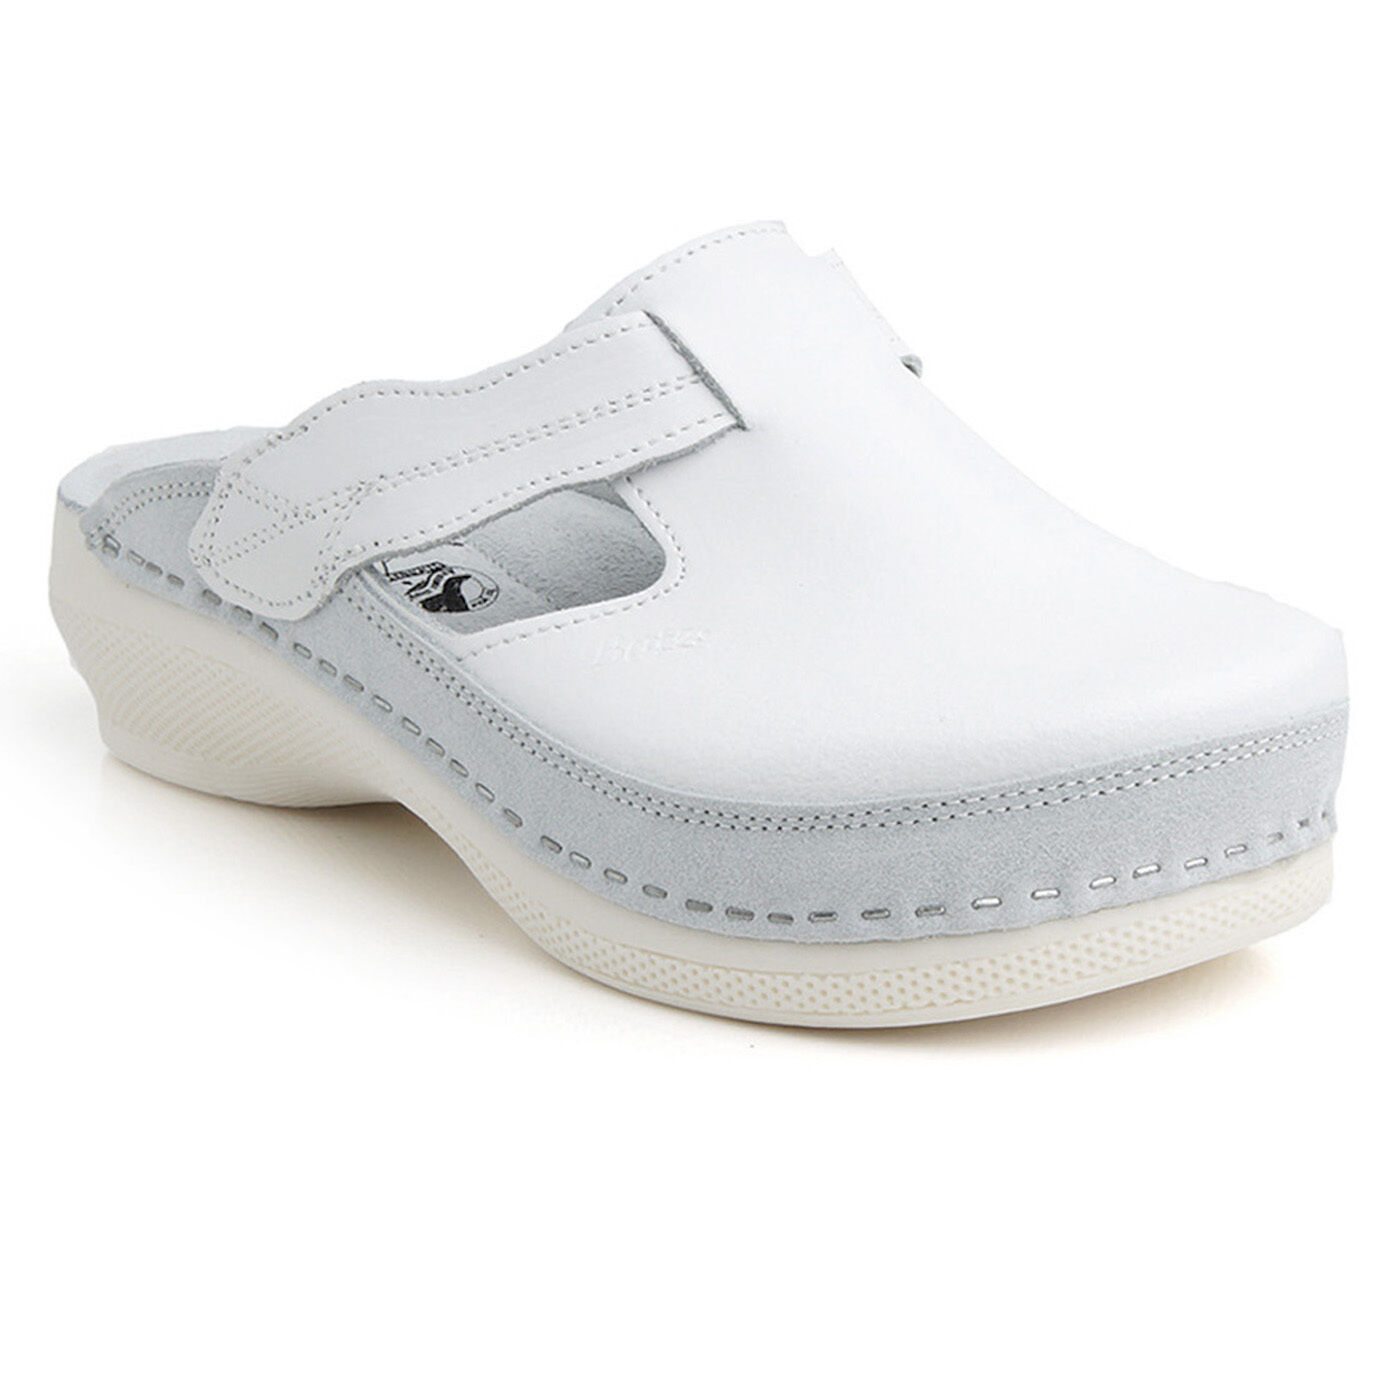 Batz FLOWER White Handmade Top Quality Leather Clogs Women